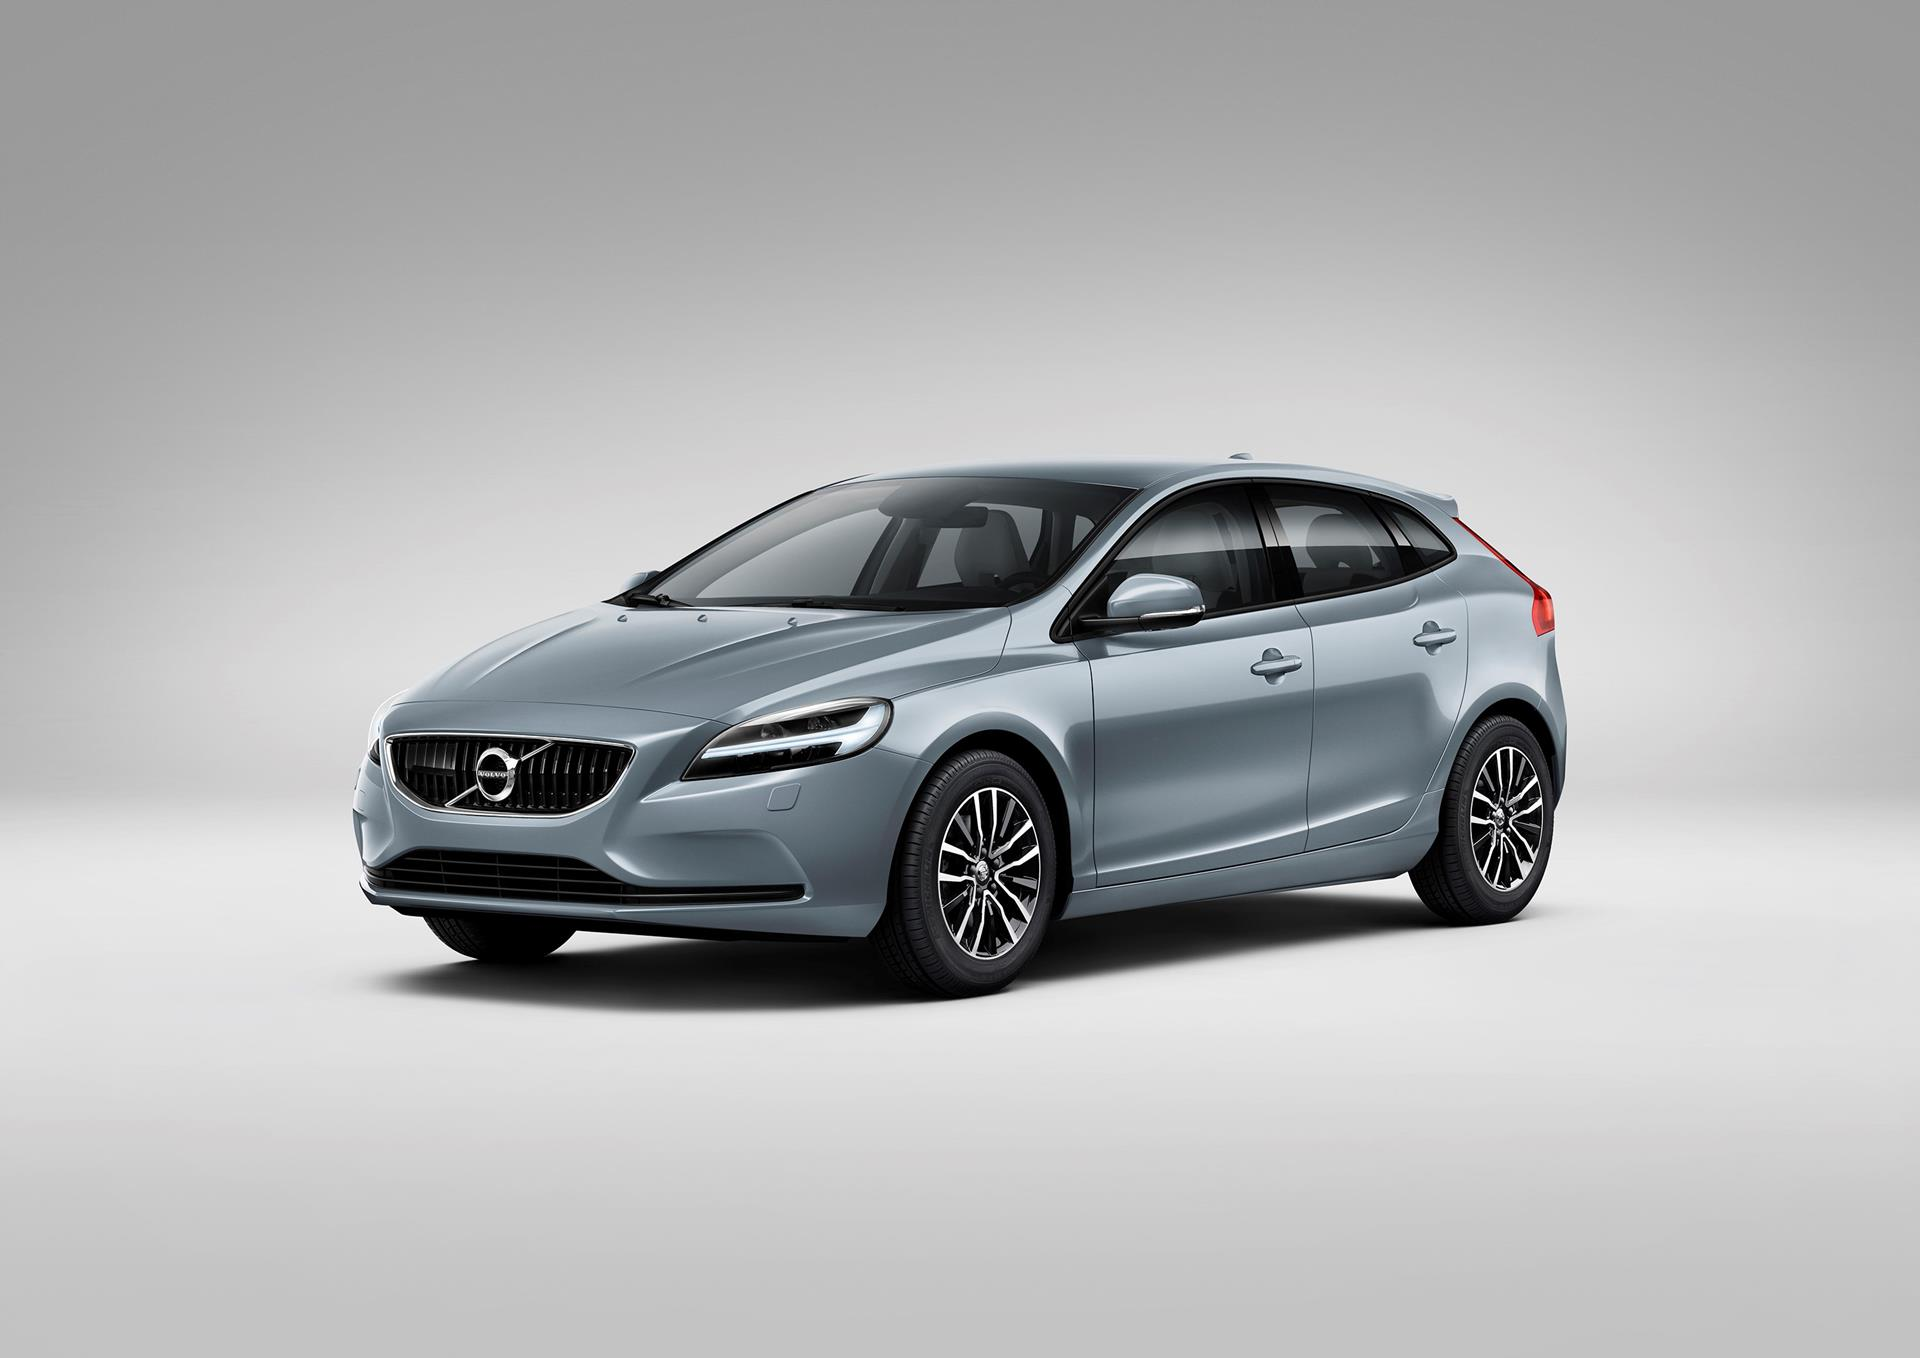 2017 Volvo V40 Uk Hatchback Images Conceptcarz Com